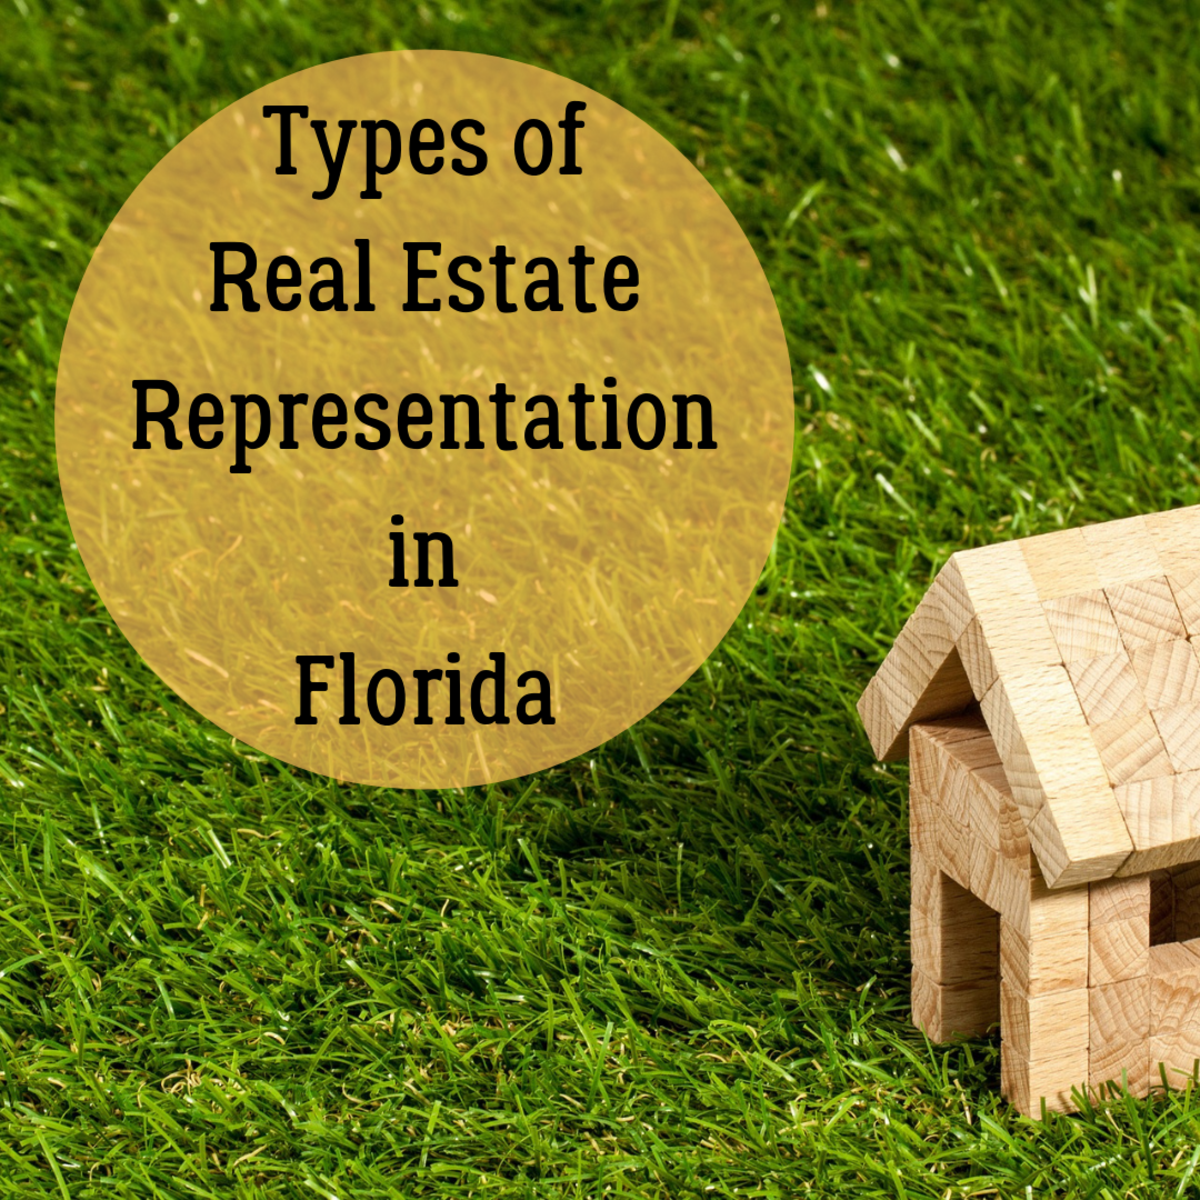 Single Agency and Transaction Brokers in Florida